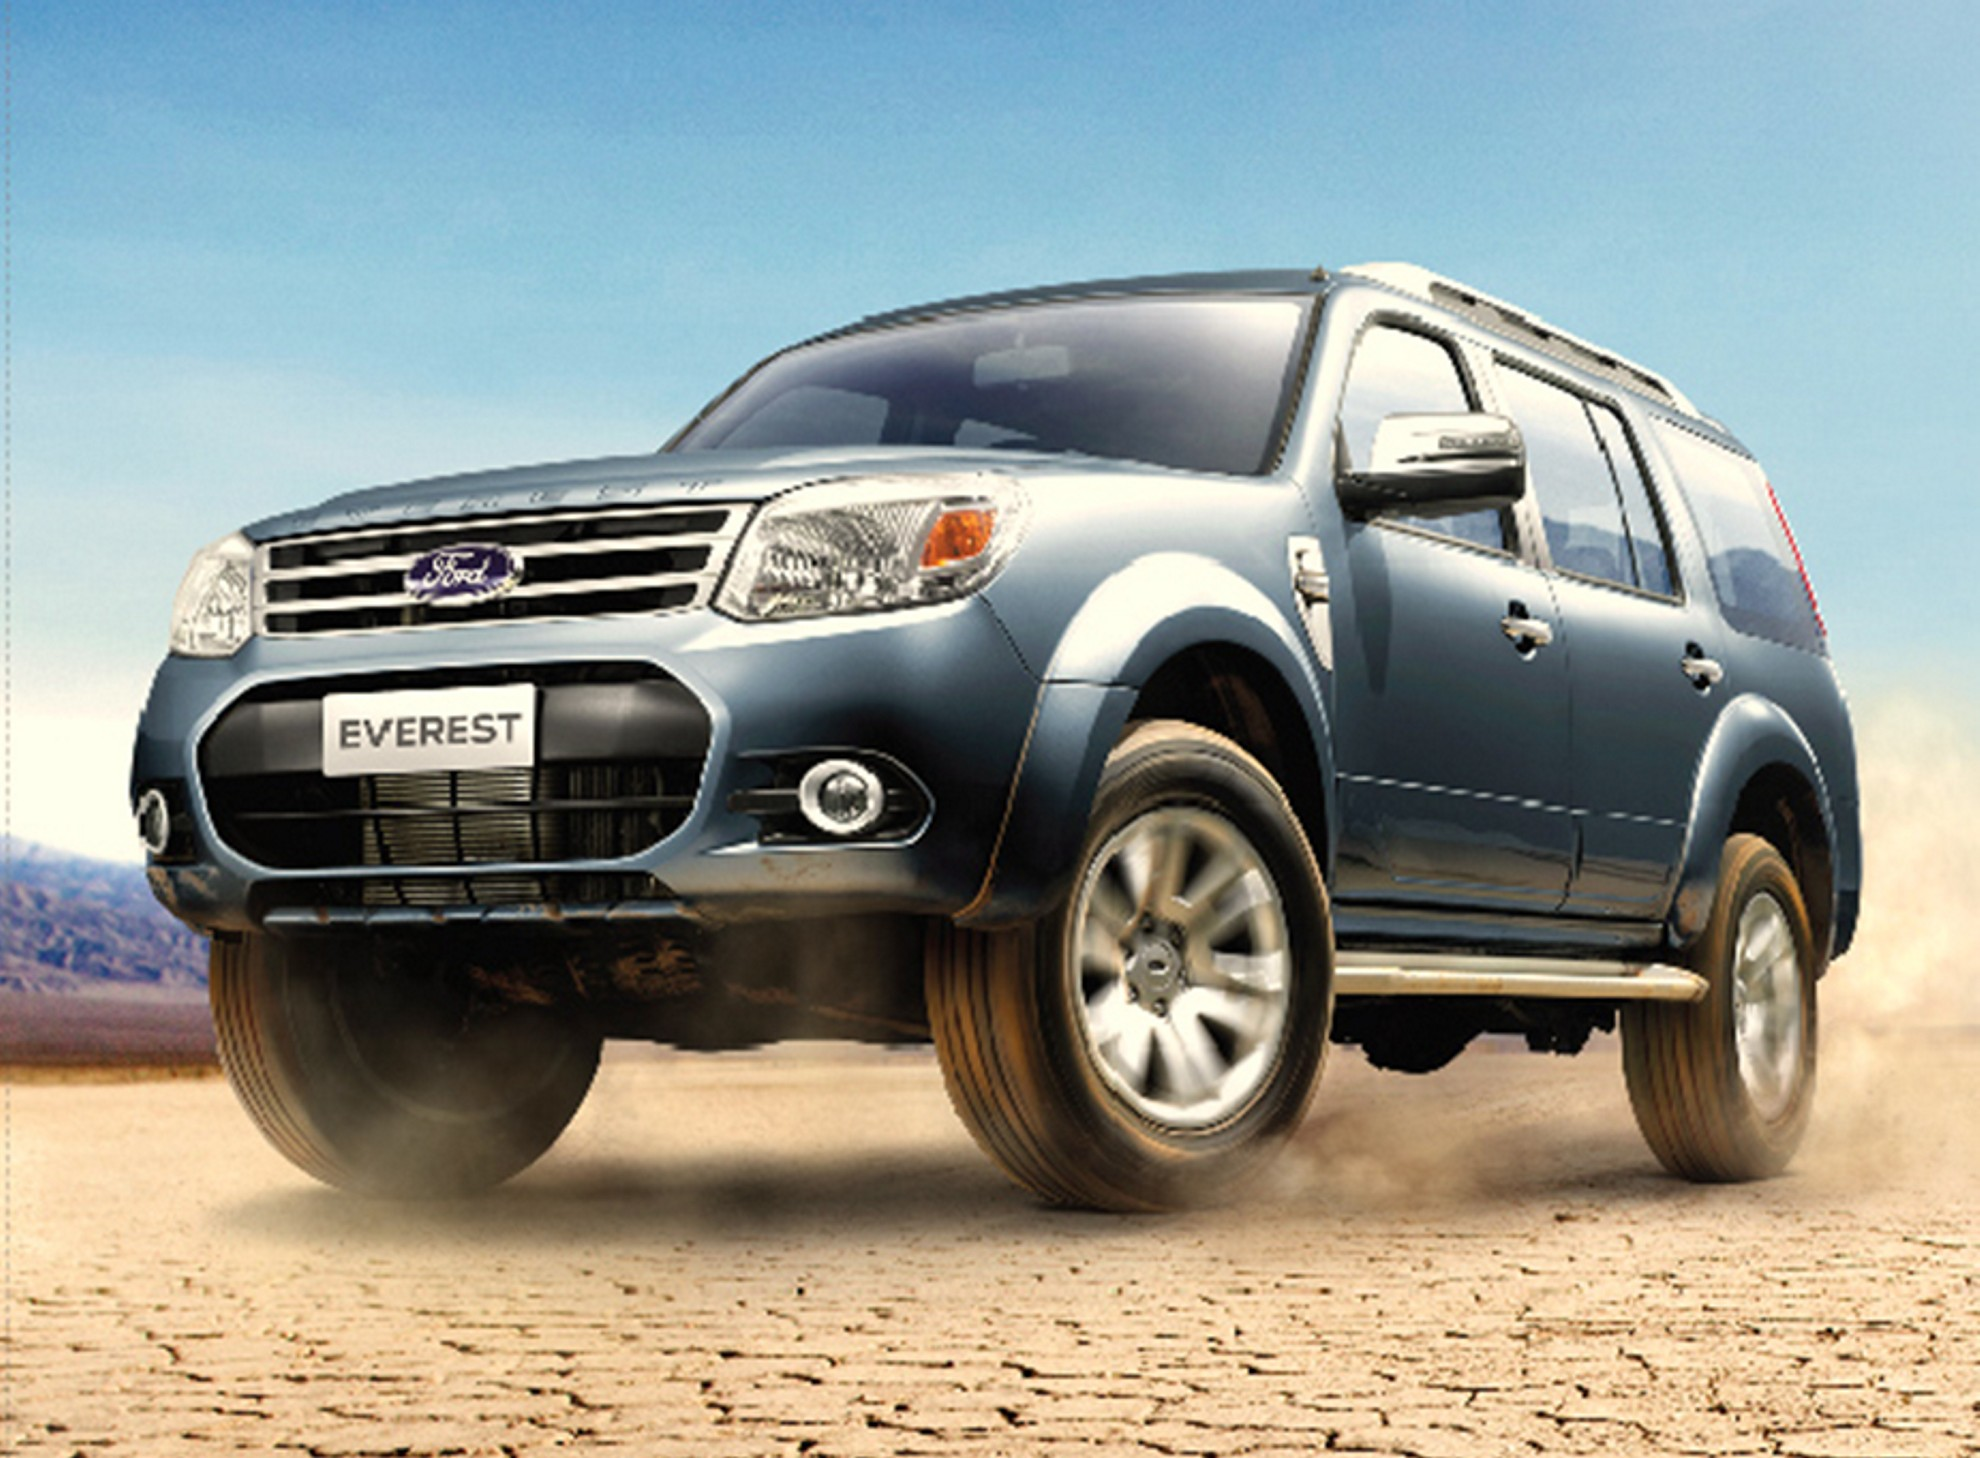 Ford everest refreshed and ready for adventure